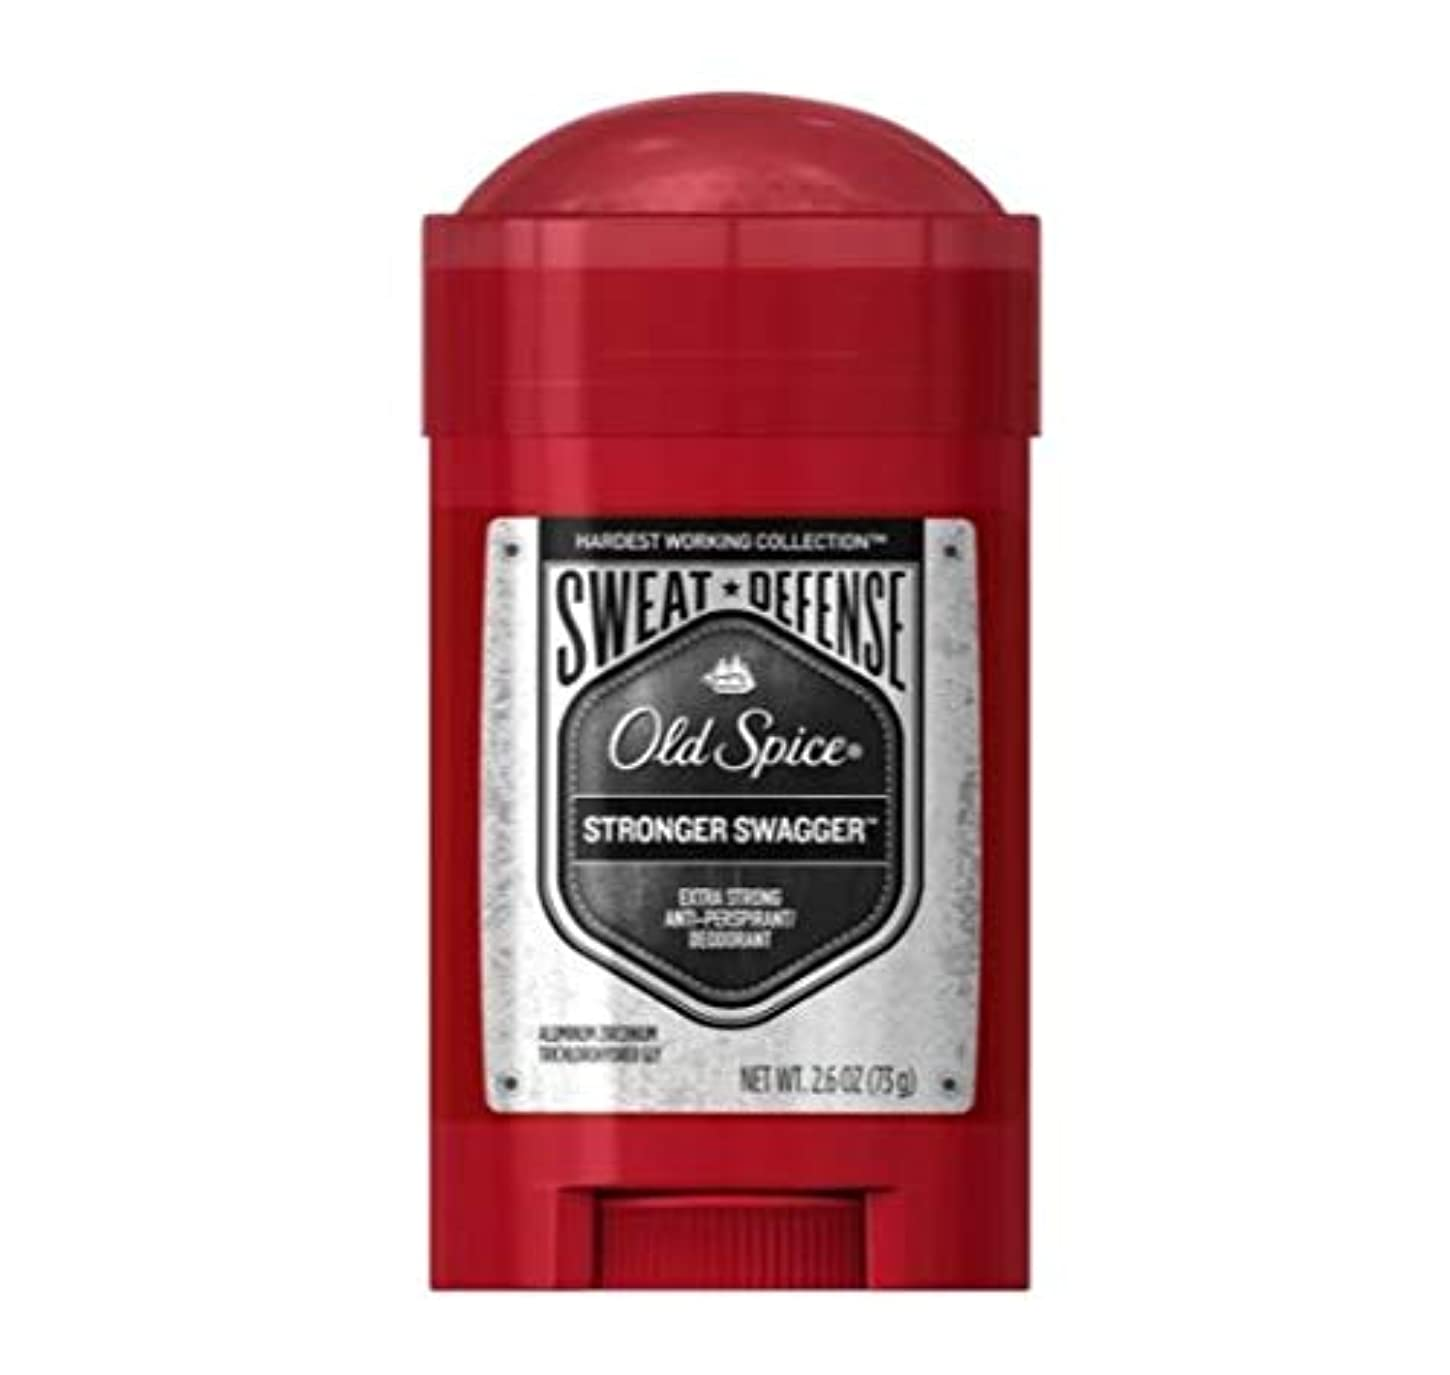 強風減らす三Old Spice Hardest Working Collection Sweat Defense Stronger Swagger Antiperspirant and Deodorant - 2.6oz オールドスパイス...